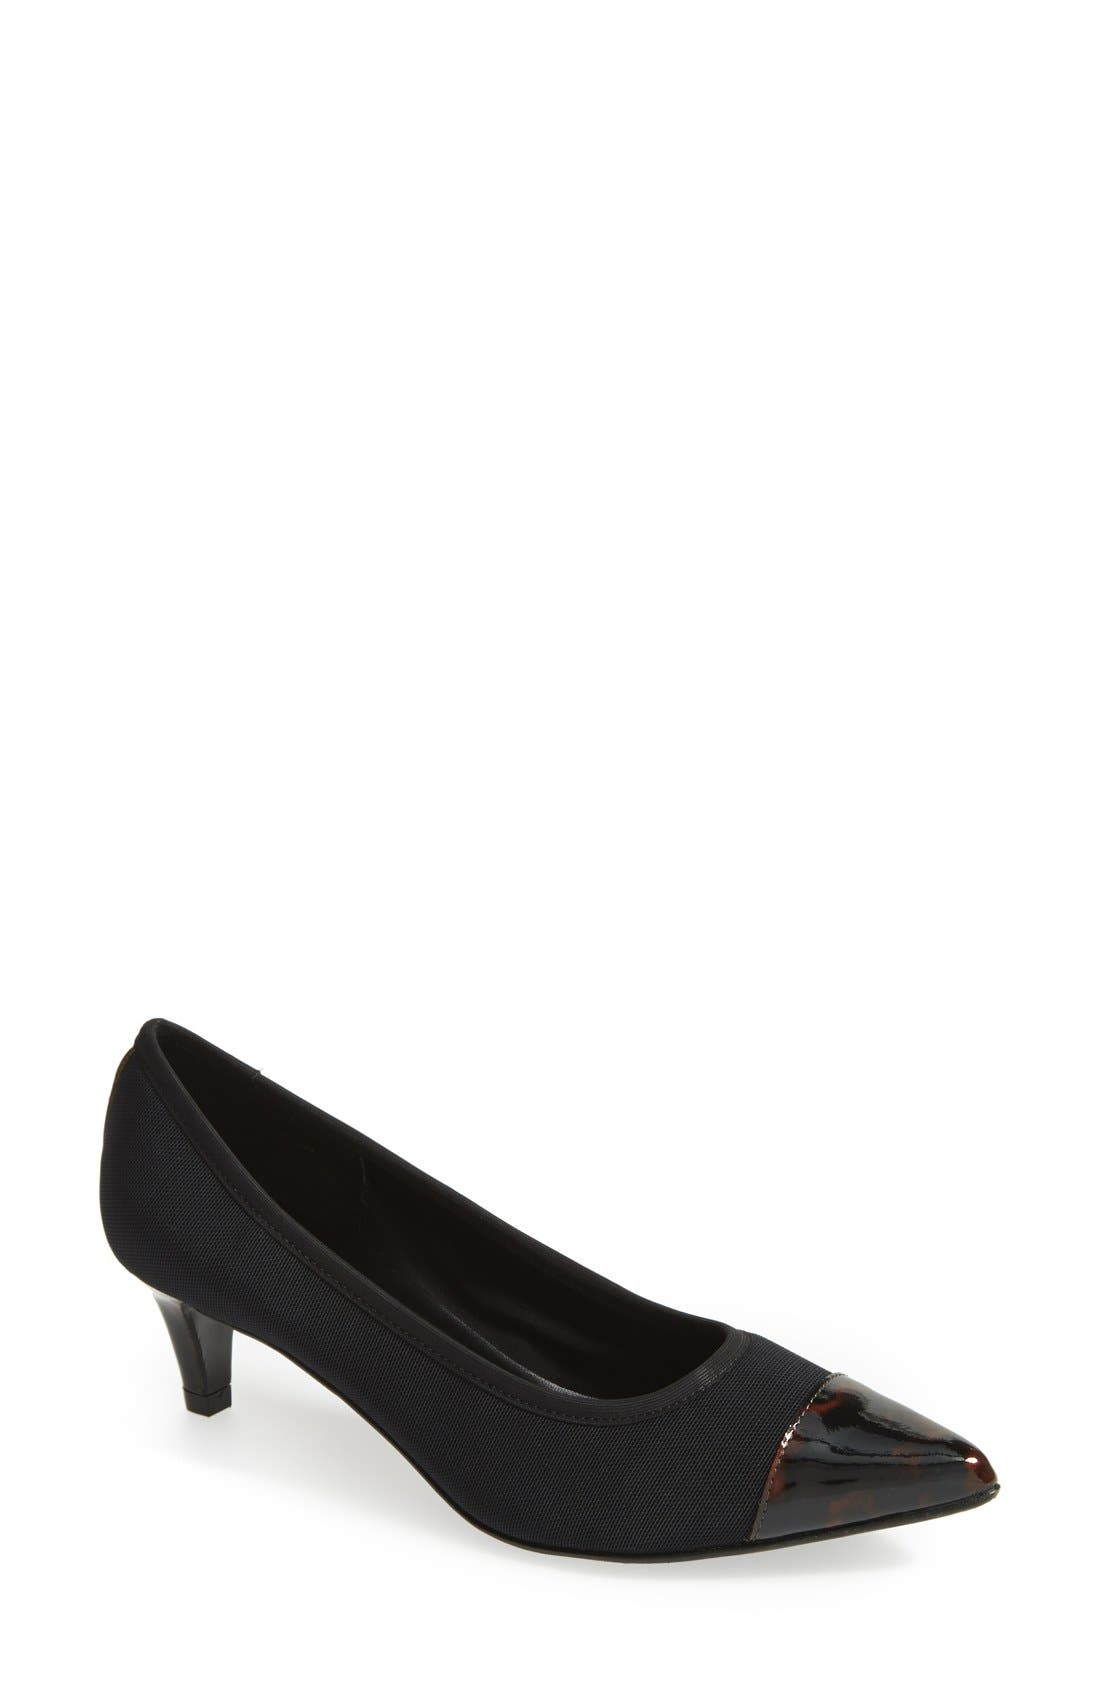 Alternate Image 1 Selected - VANELi 'Taya' Cap Toe Pump (Women)